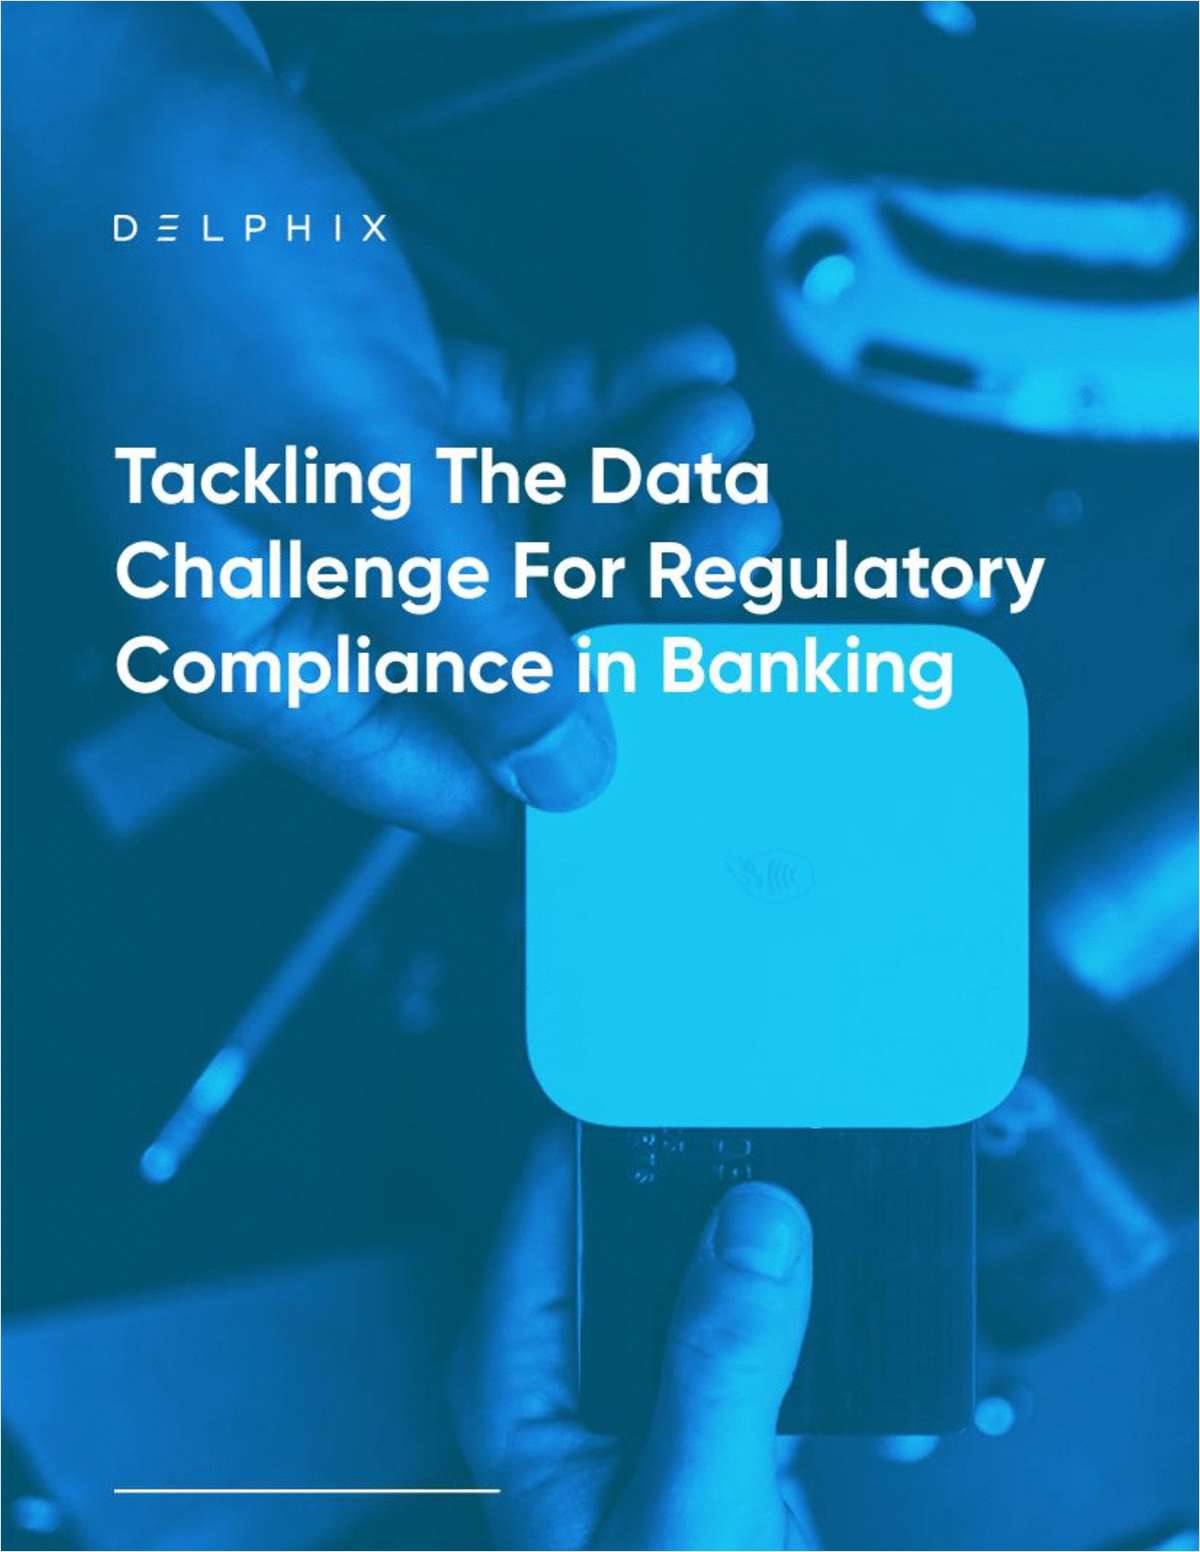 Tackling the Data Challenge for Regulatory Compliance in Banking